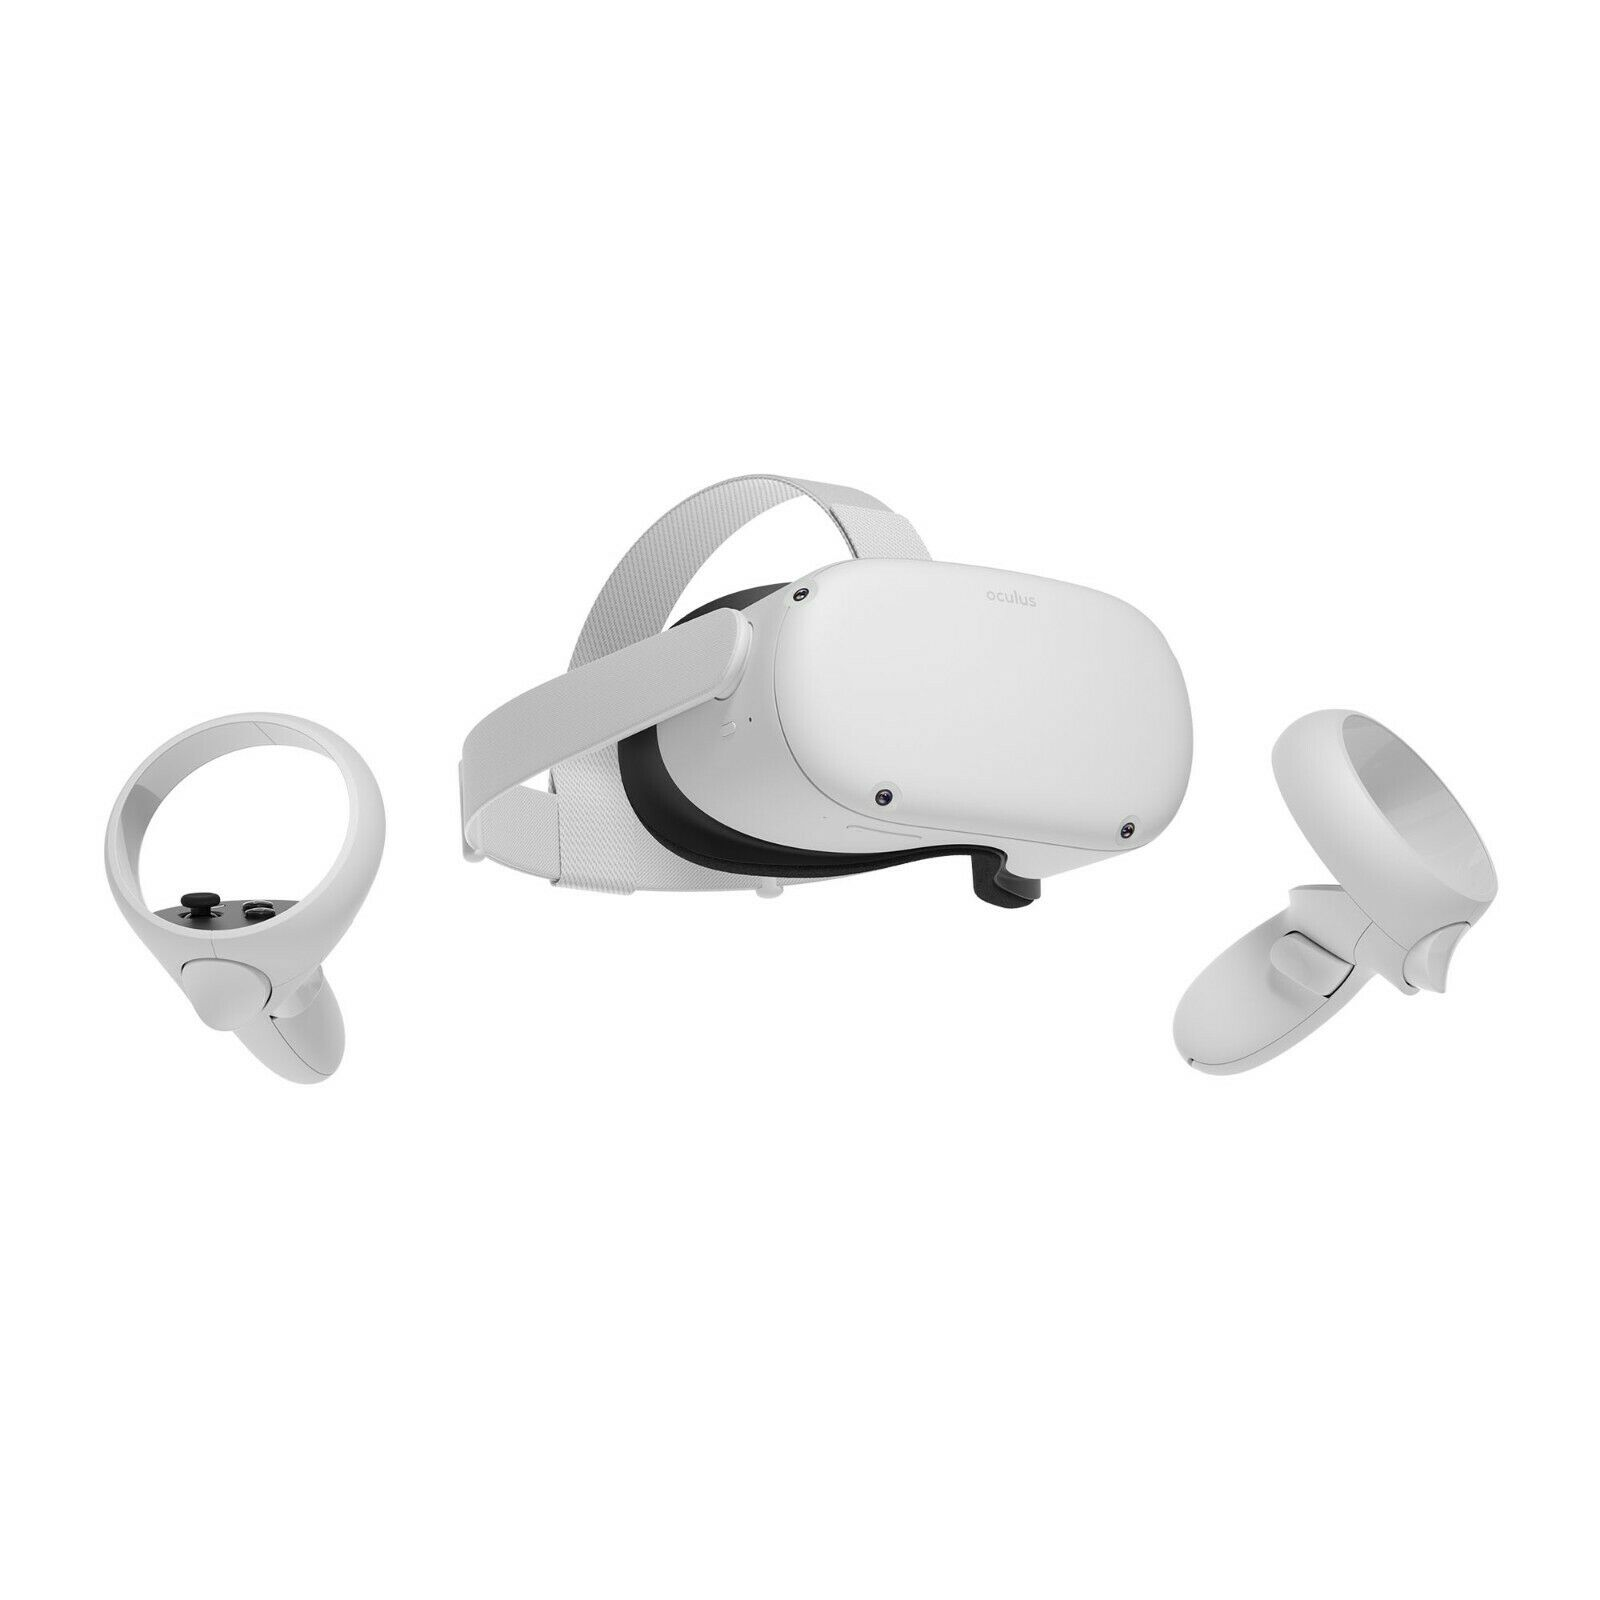 NEW Oculus Quest 2 128GB All-in-One VR Headset - White - FREE SHIPPING